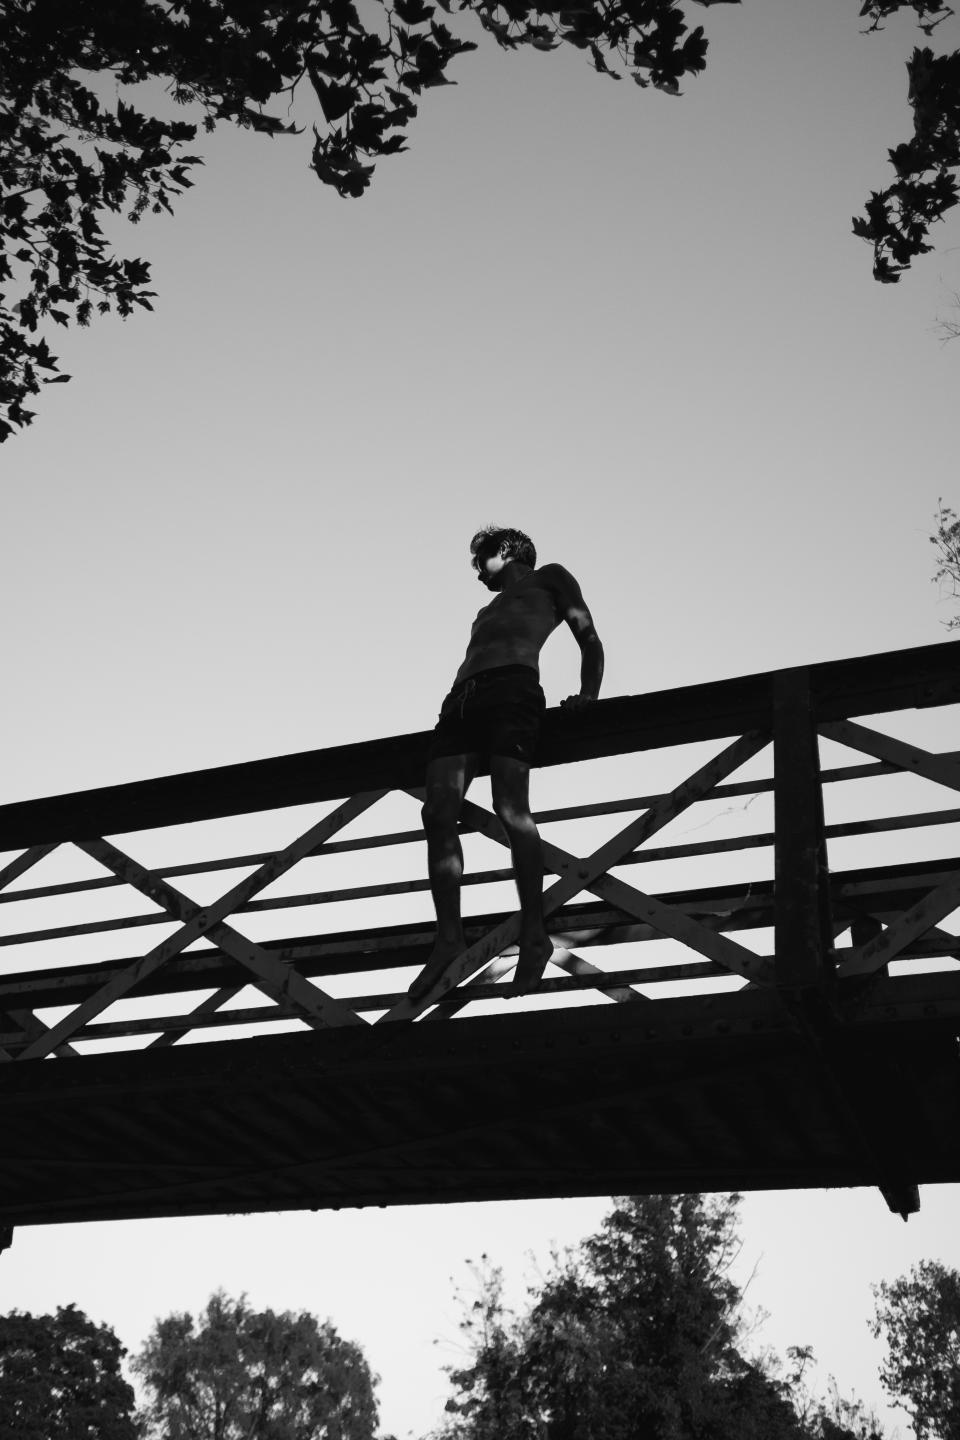 bridge infrastructure trees plants nature outdoor people man alone jump silhouette black and white sky